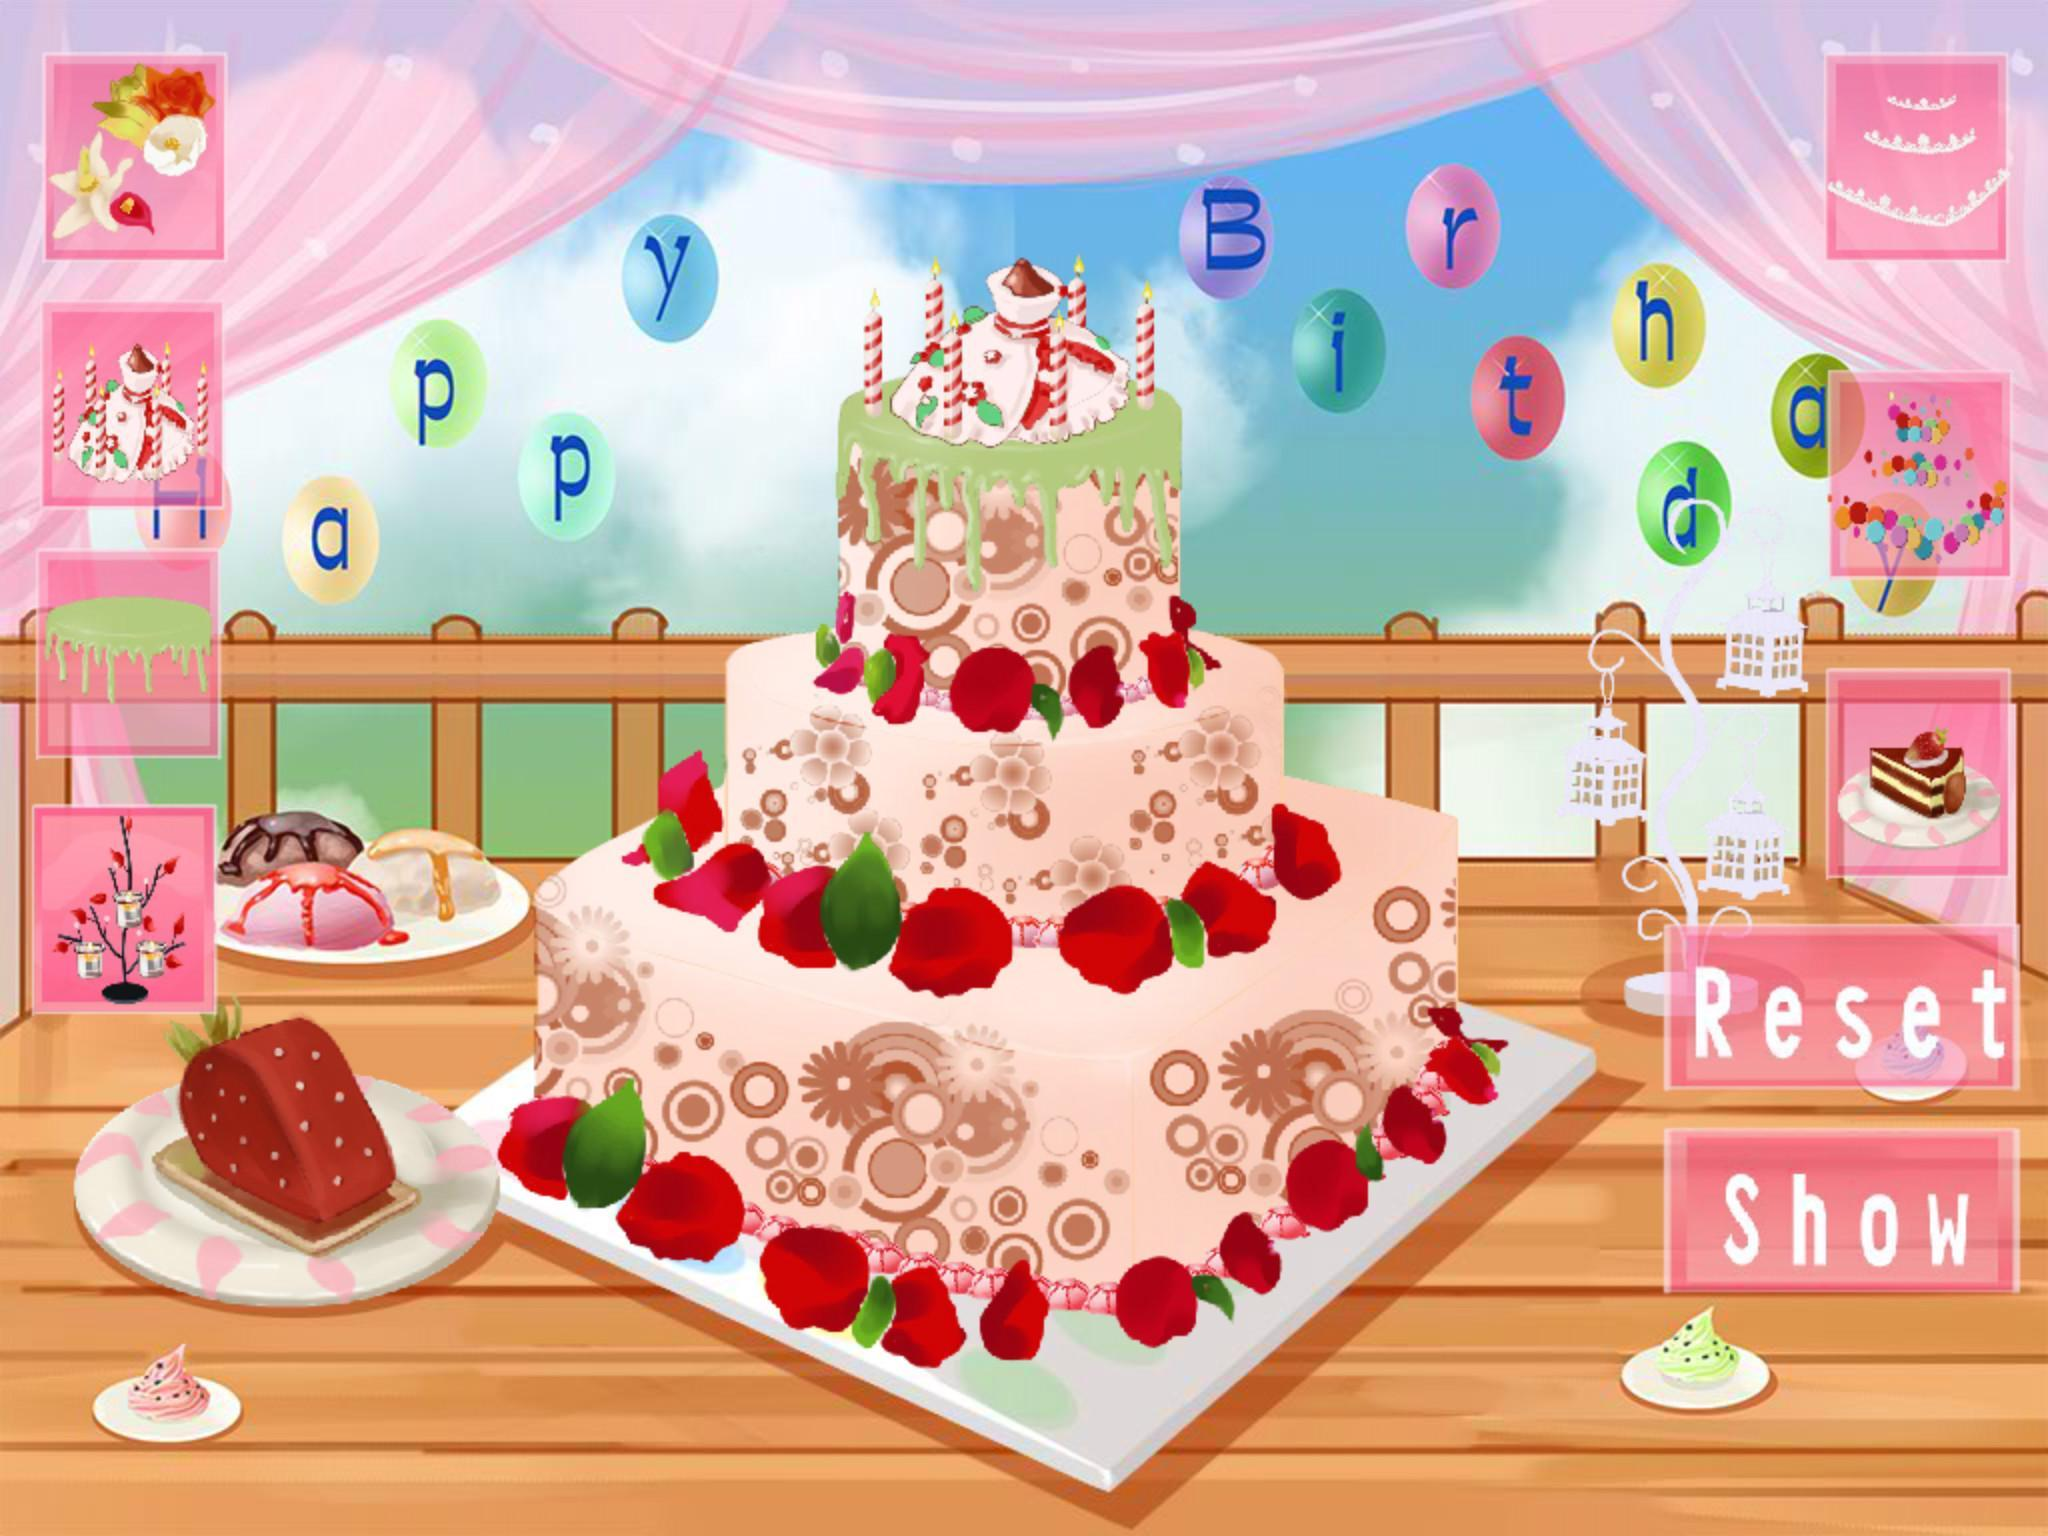 Enjoyable Pretty Birthday Cakes Hd For Android Apk Download Birthday Cards Printable Riciscafe Filternl